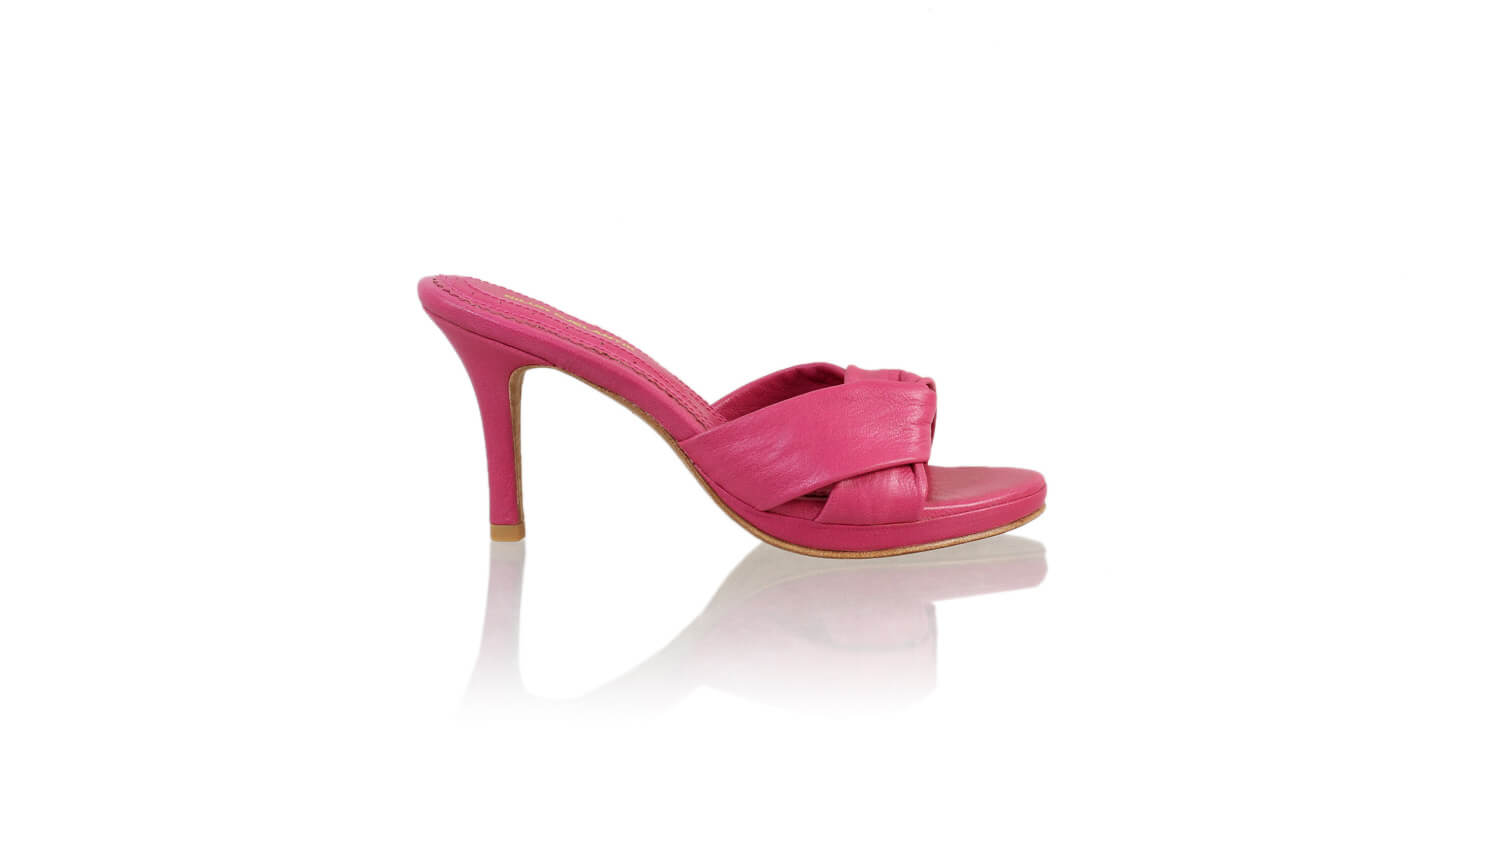 Leather-shoes-Sally 90mm SH-01 PF - Fuschia-sandals higheel-NILUH DJELANTIK-NILUH DJELANTIK